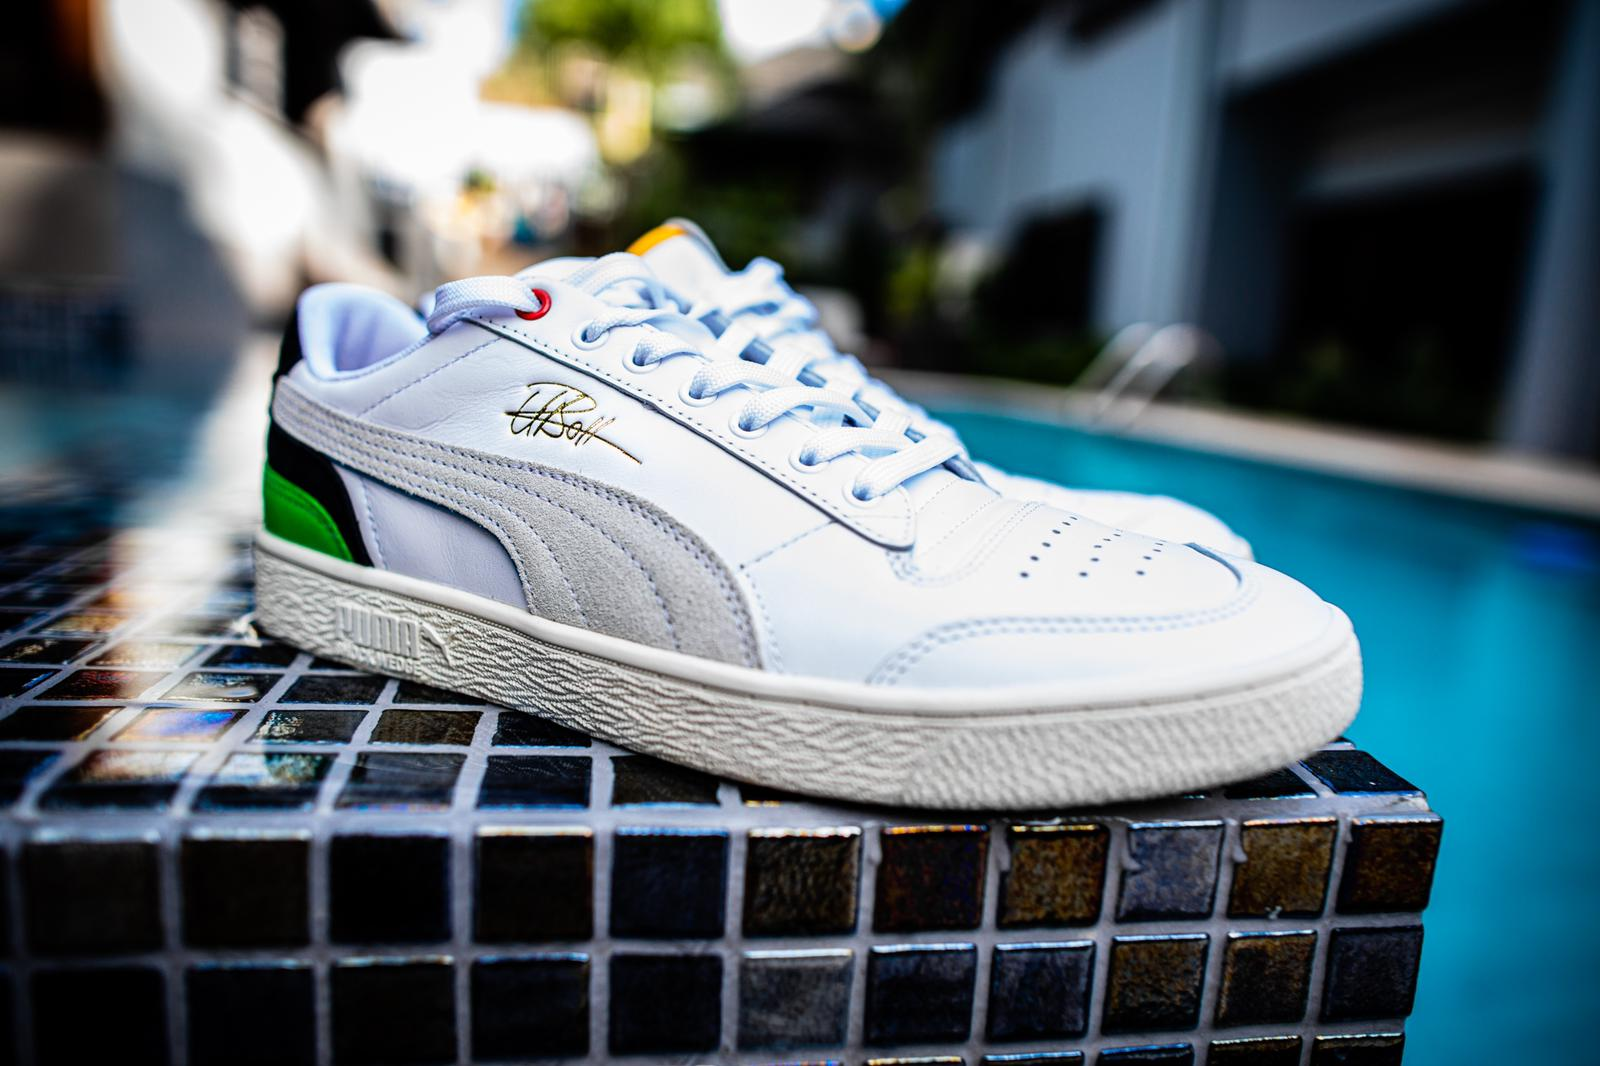 Puma x Usain Bolt Ralph Sampson trainers available on puma.com